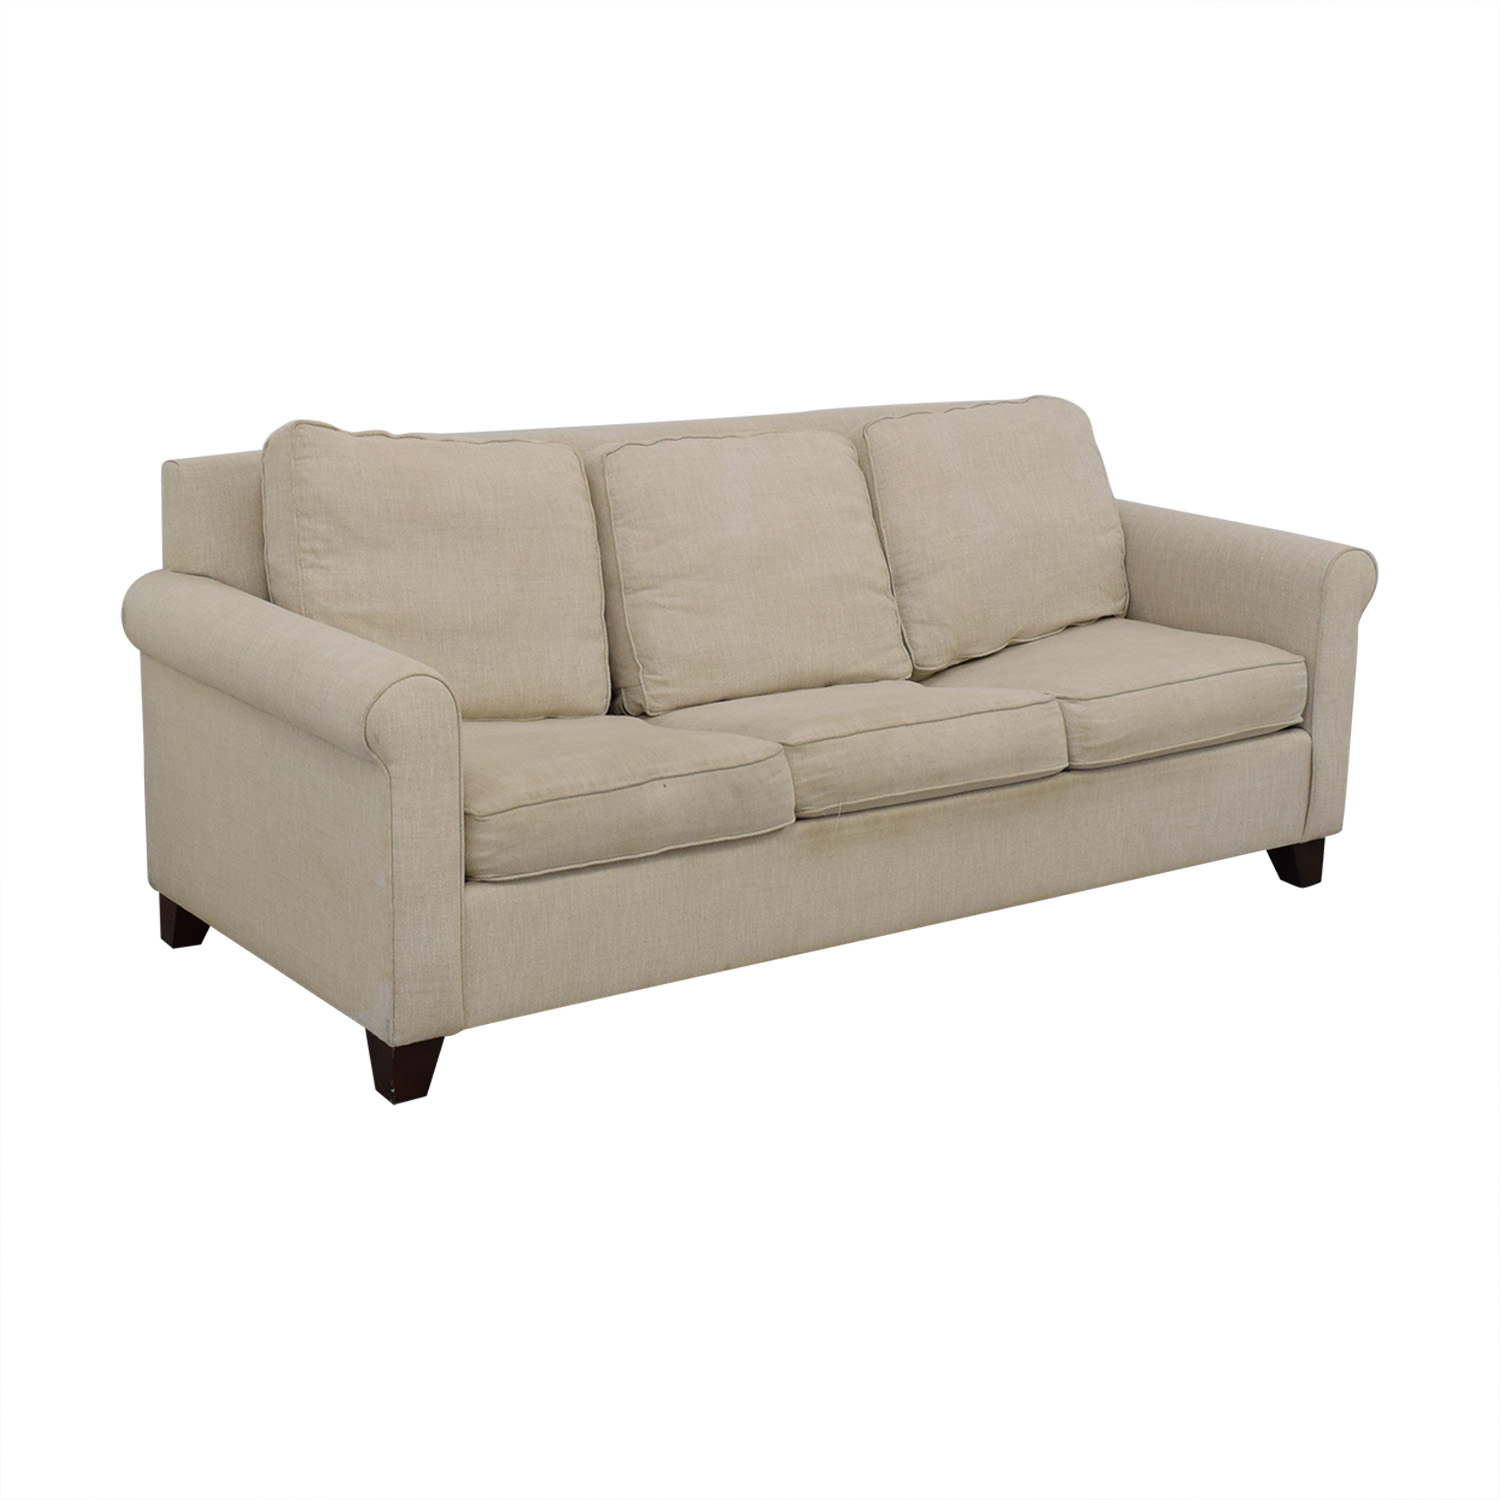 buy West Elm Cameron Roll Arm Upholstered Sleeper Sofa West Elm Sofas